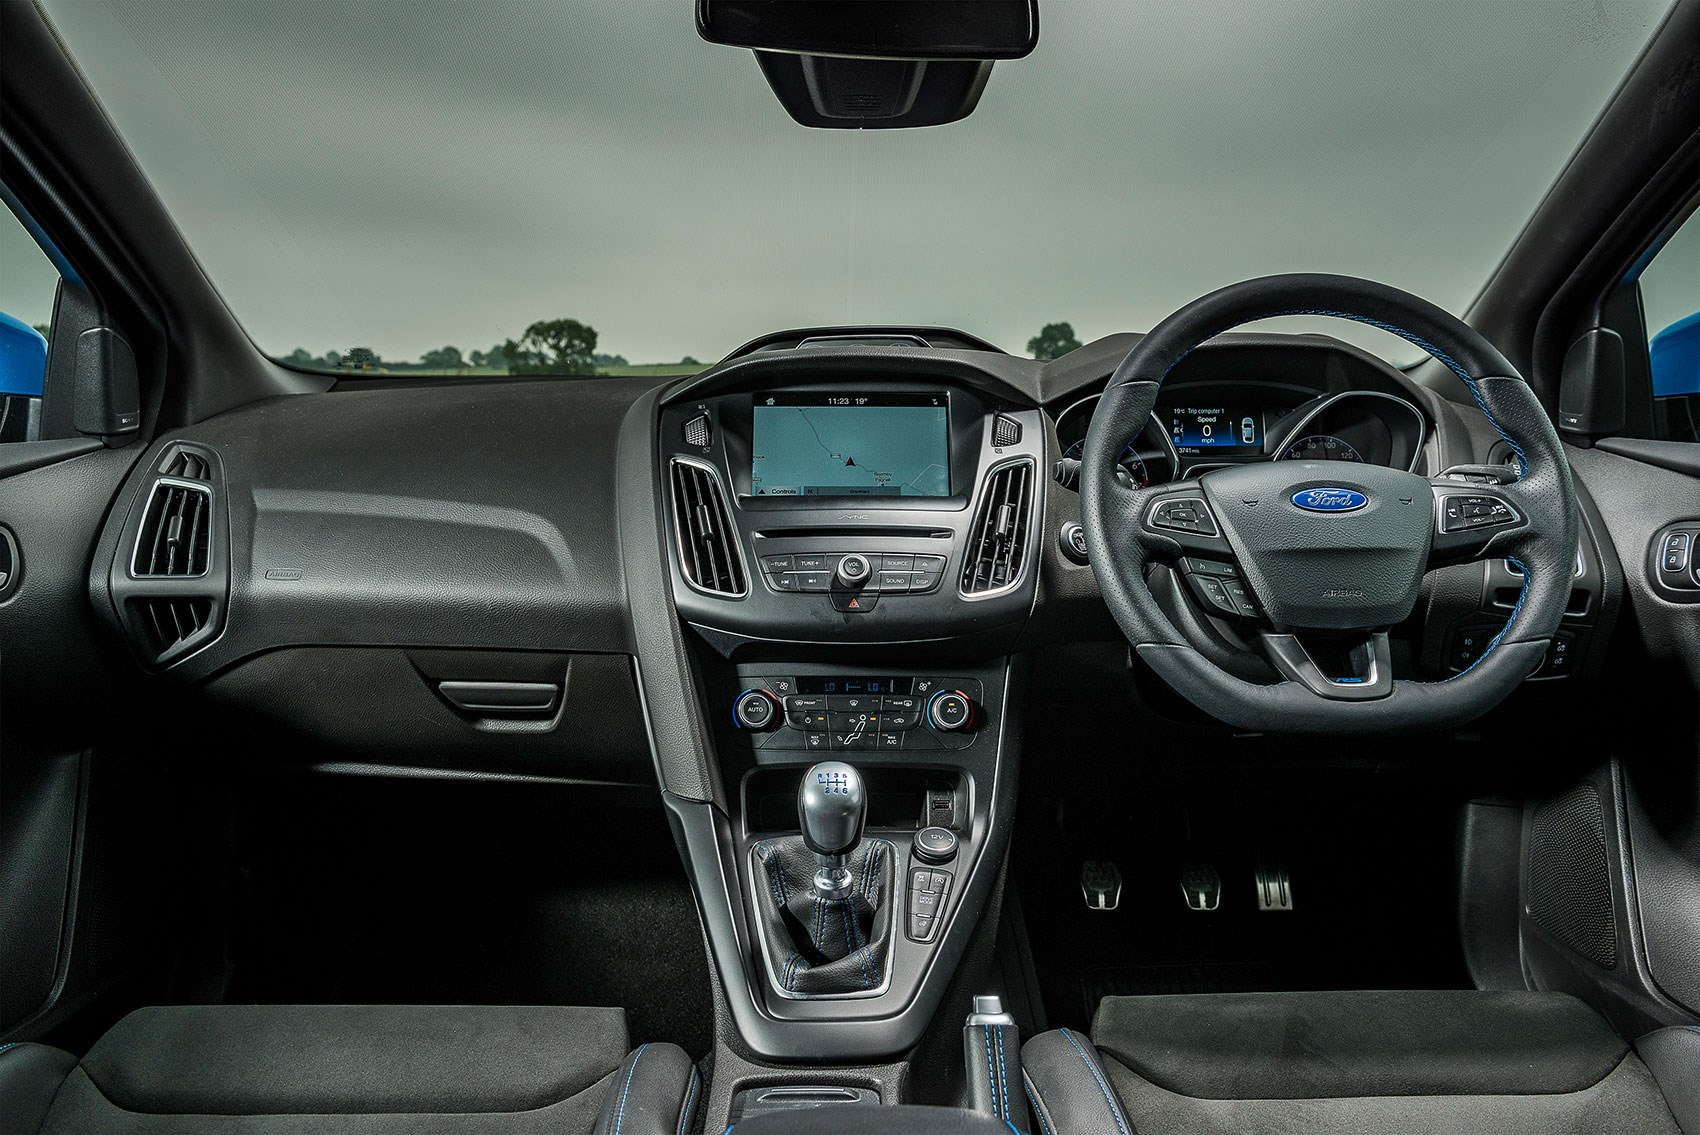 Ford Focus Rs Interior About As Inviting A Black Hole